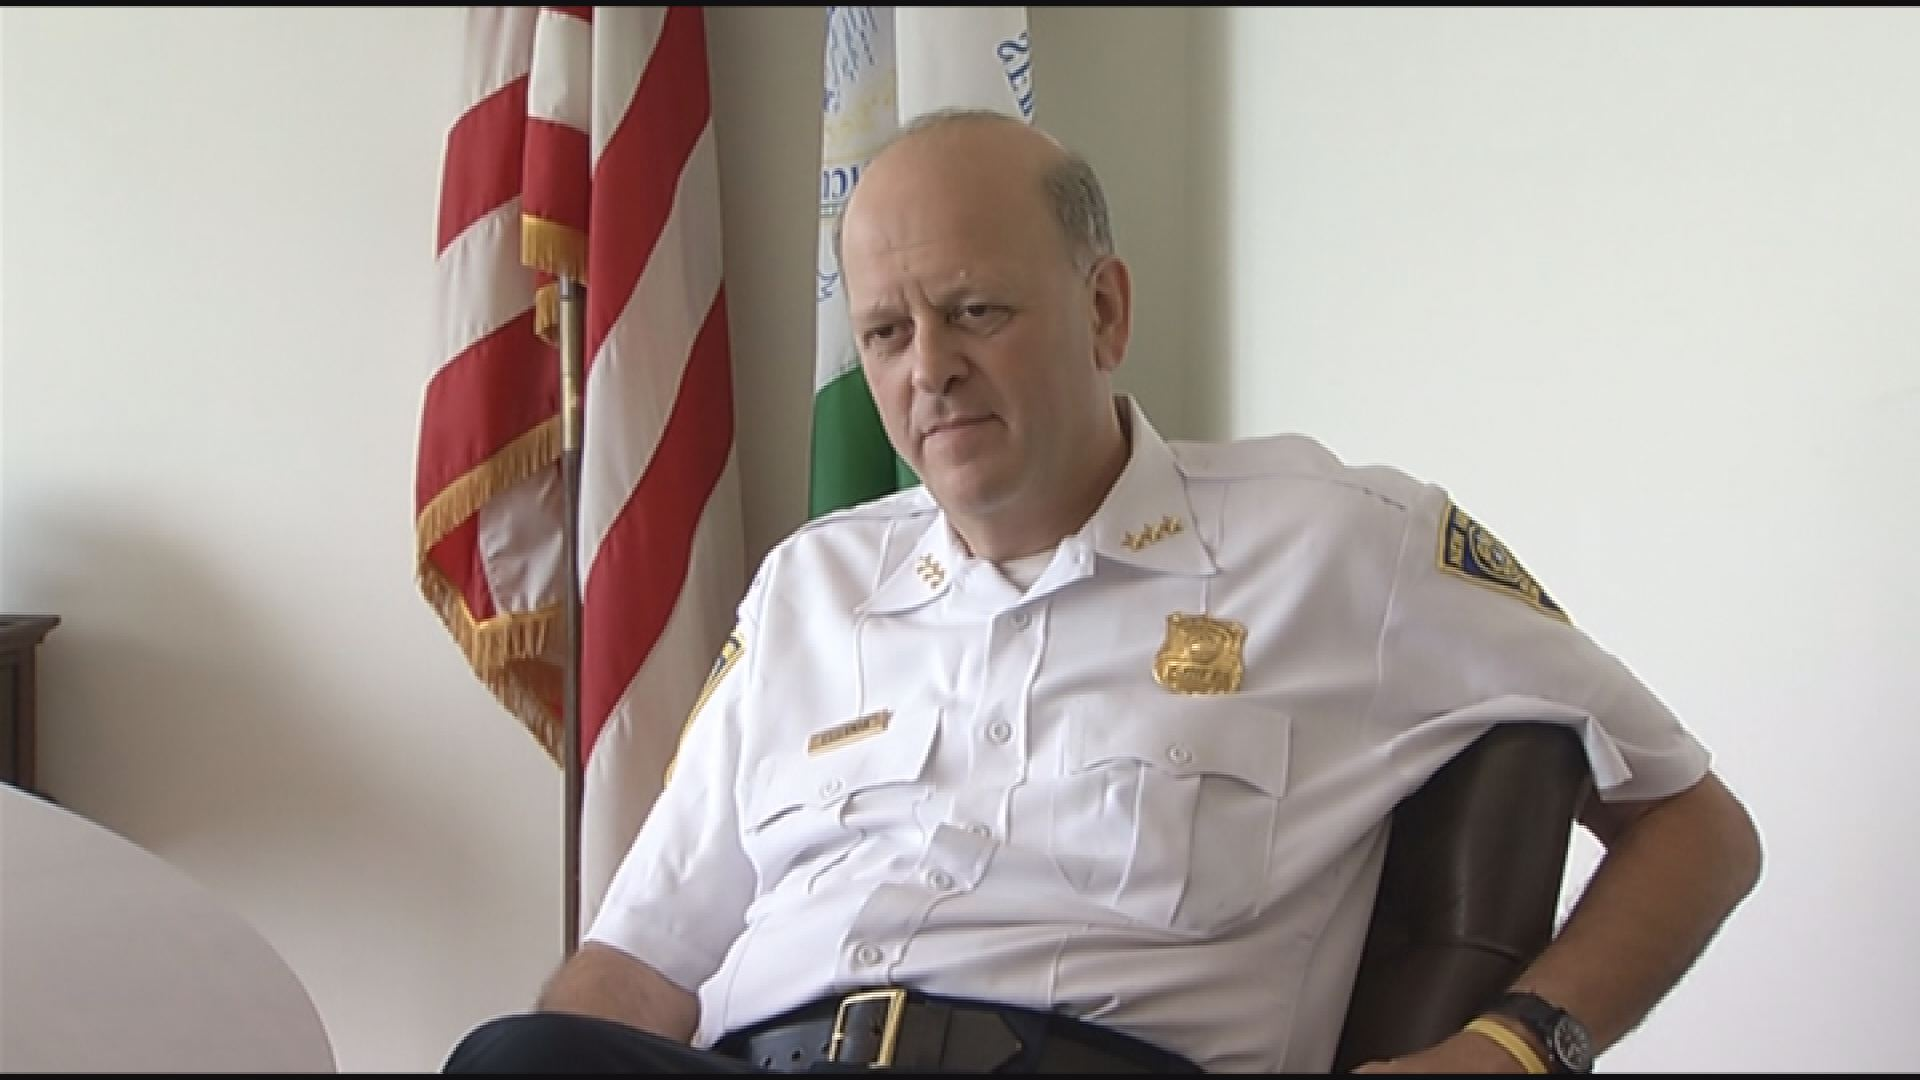 New Haven Mayor Toni Harp has written a letter to Police Chief Dean Esserman (pictured) reprimanding him for his conduct during a Yale-Army football game in September.